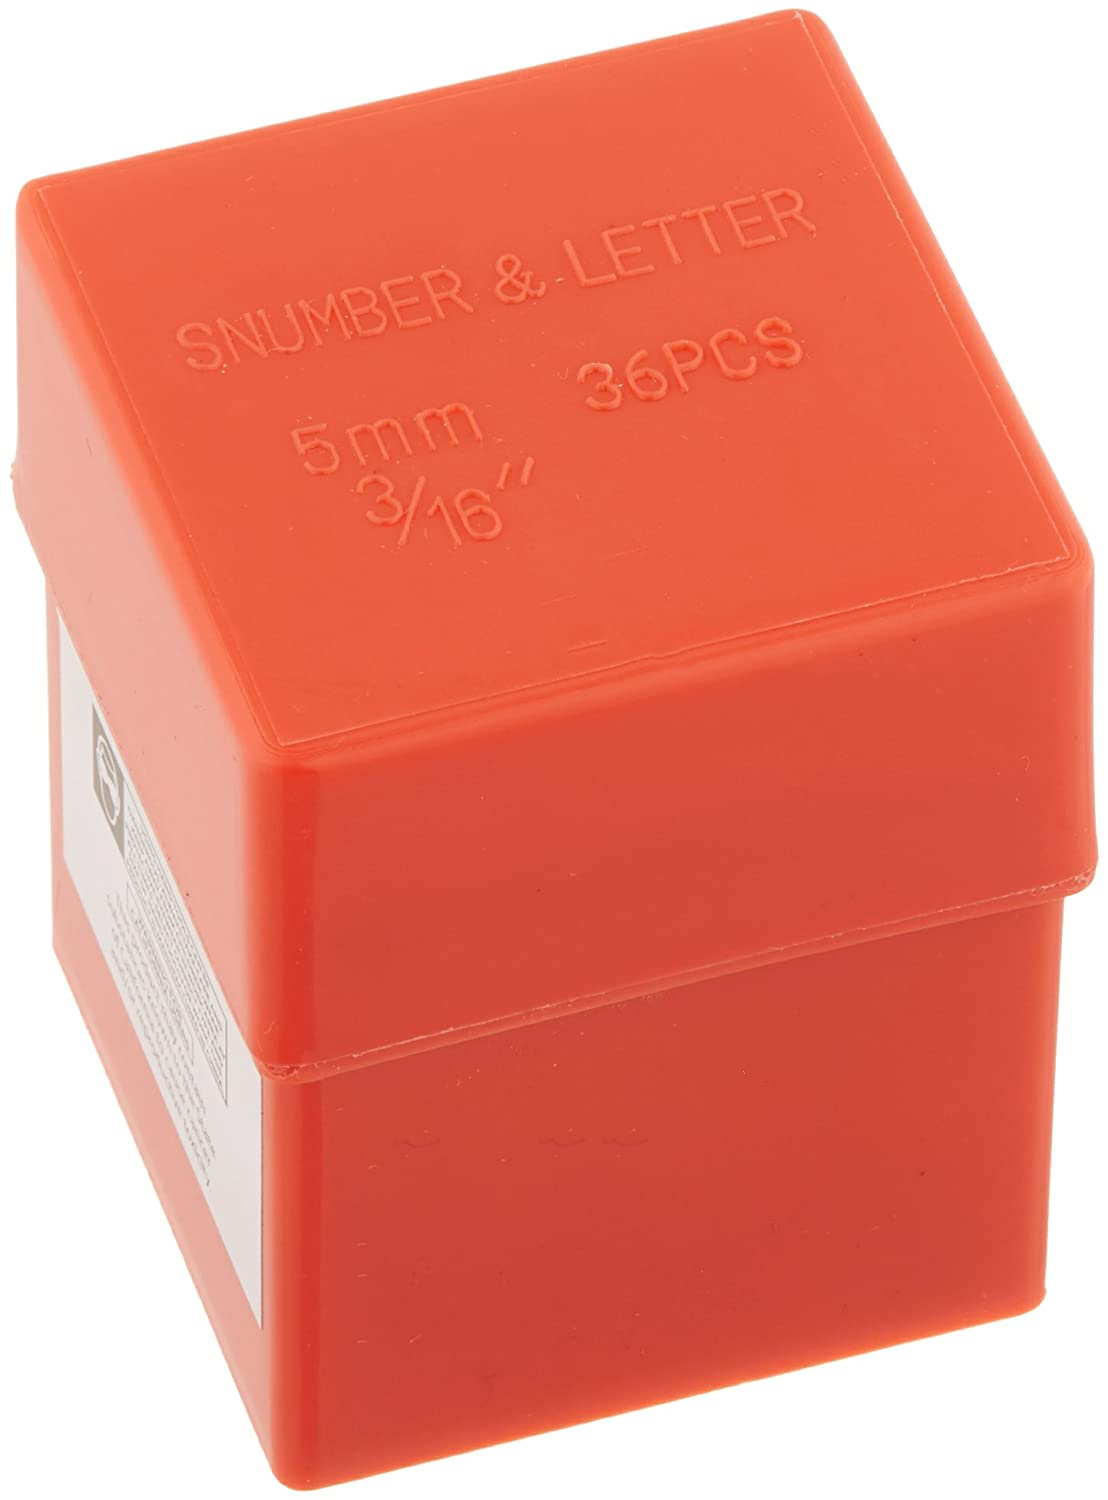 SE 955NLS 36-Piece 5mm Number and Letter Punch Set in Plastic Box